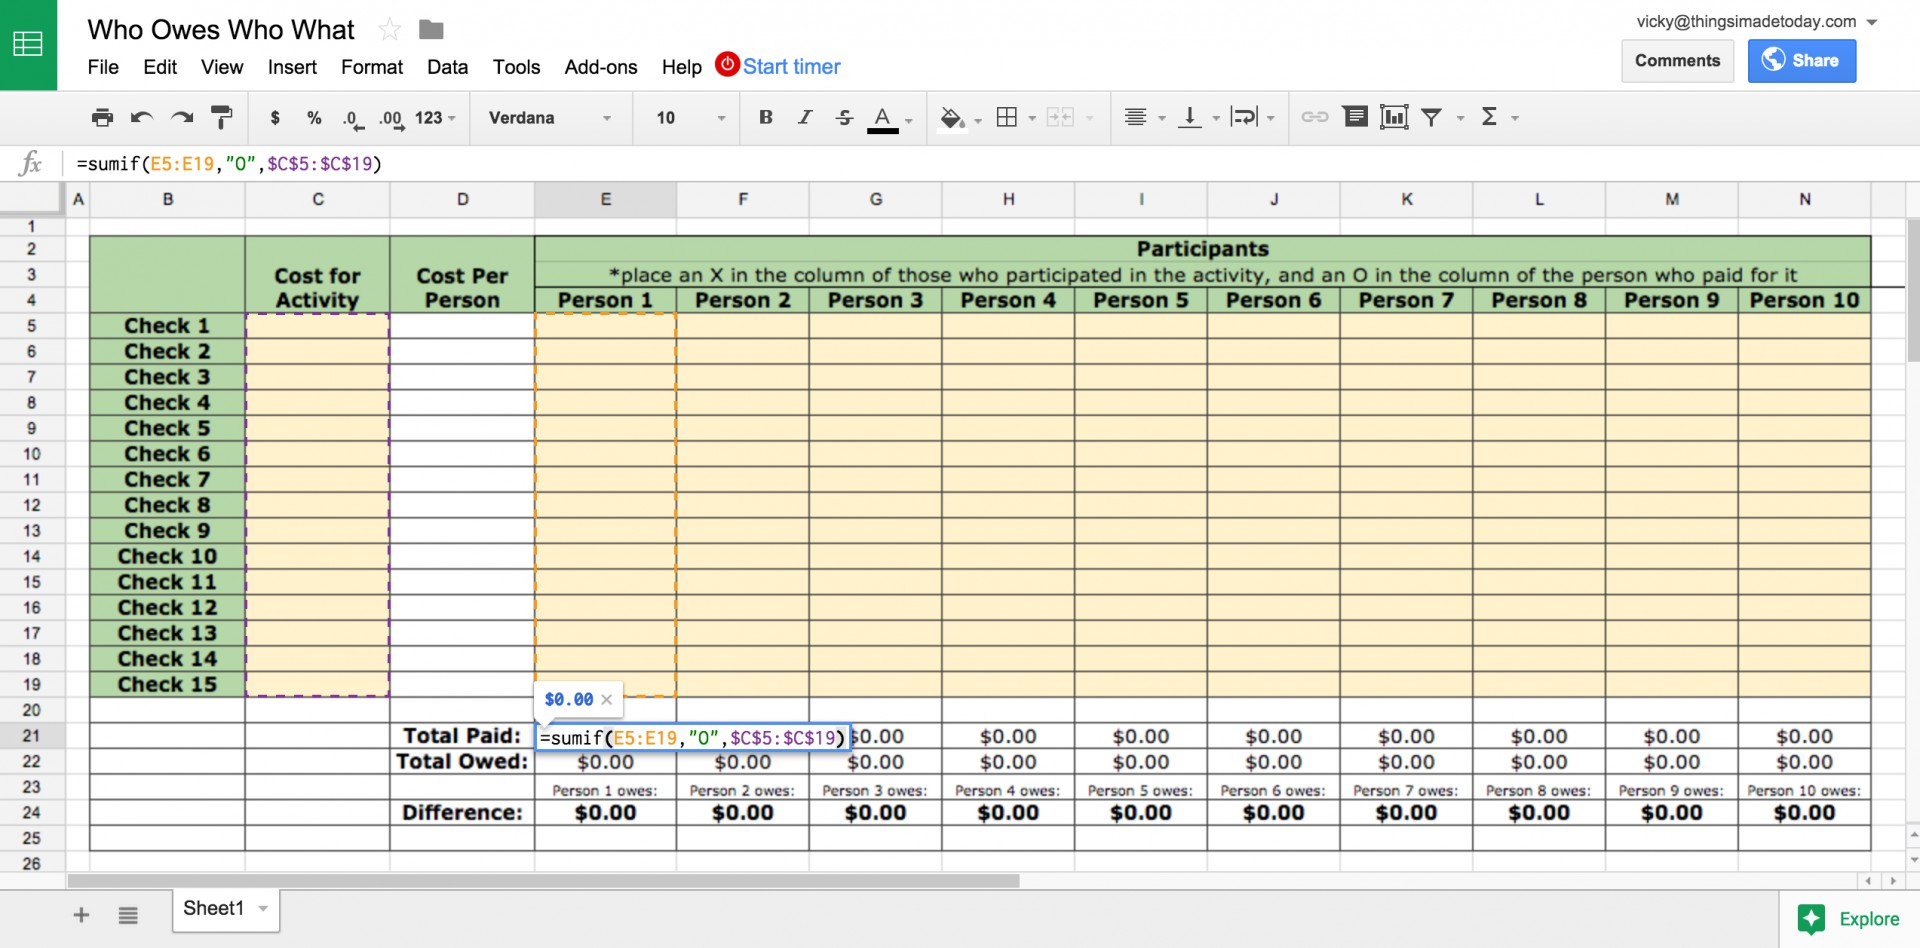 Inventory Spreadsheet Template Google Sheets In 005 Inventory Template Google Sheets Ideas ~ Ulyssesroom